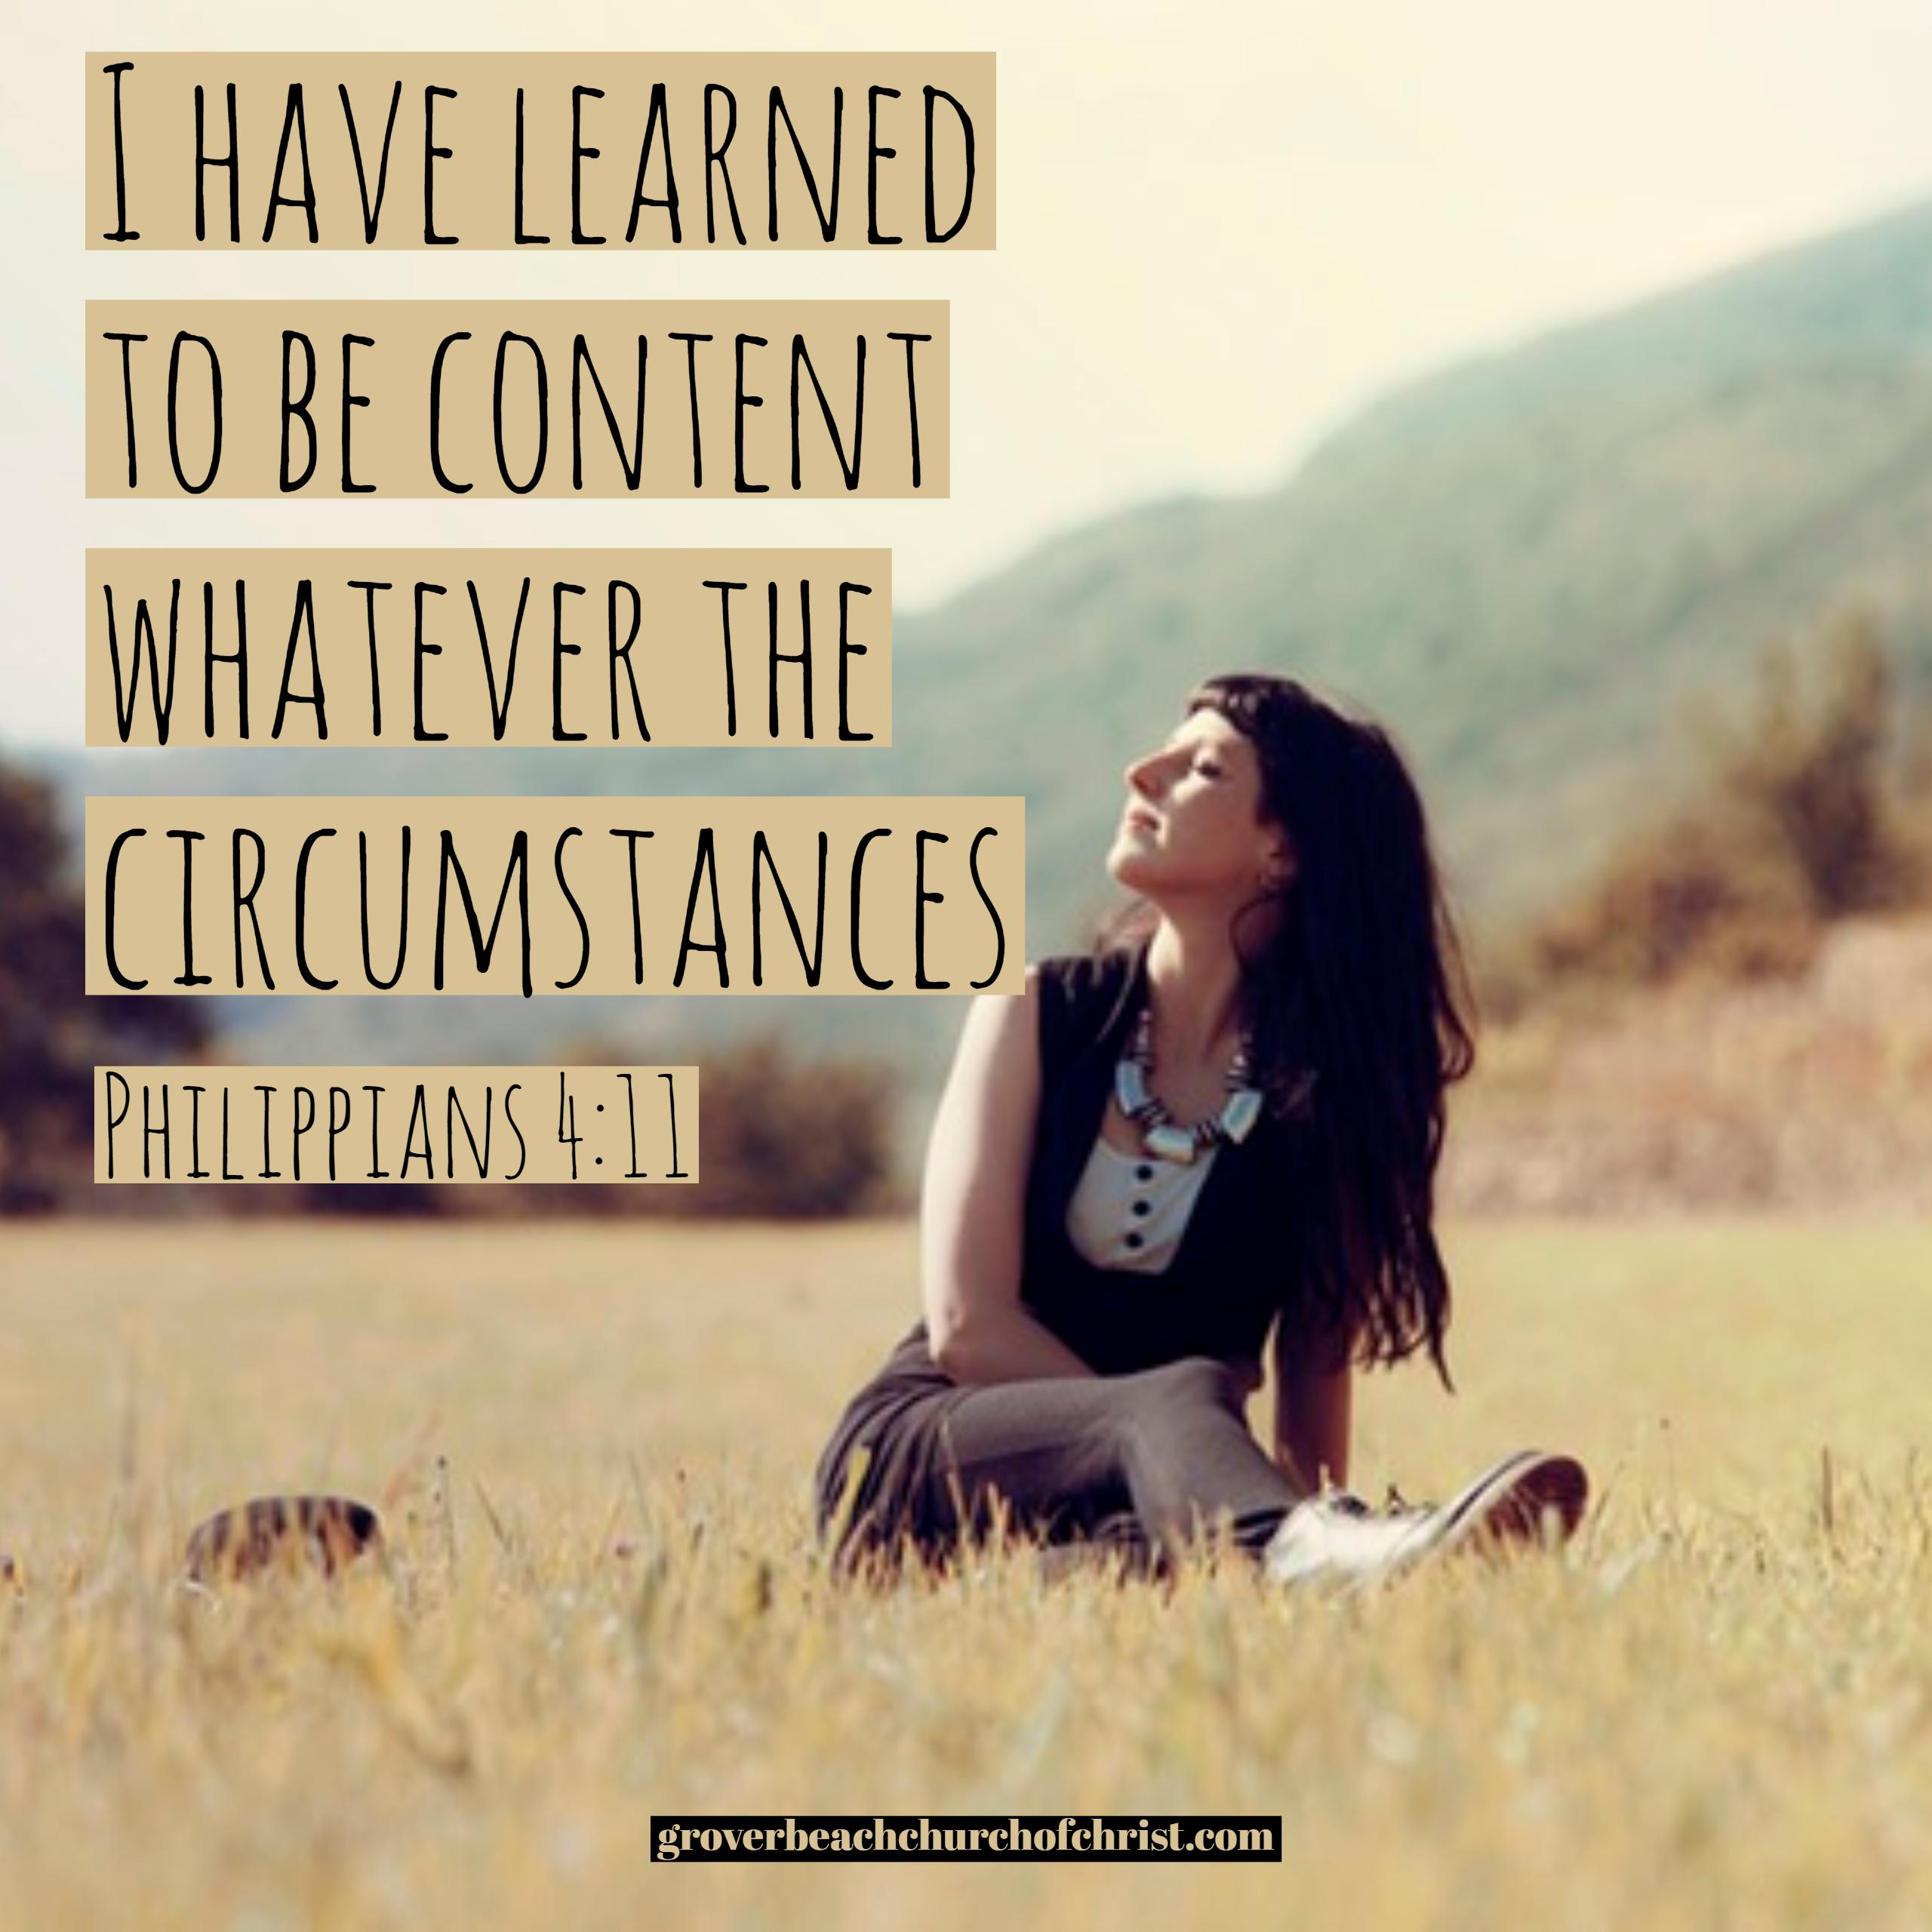 philippians-4:11-i-have-learned-to-be-content